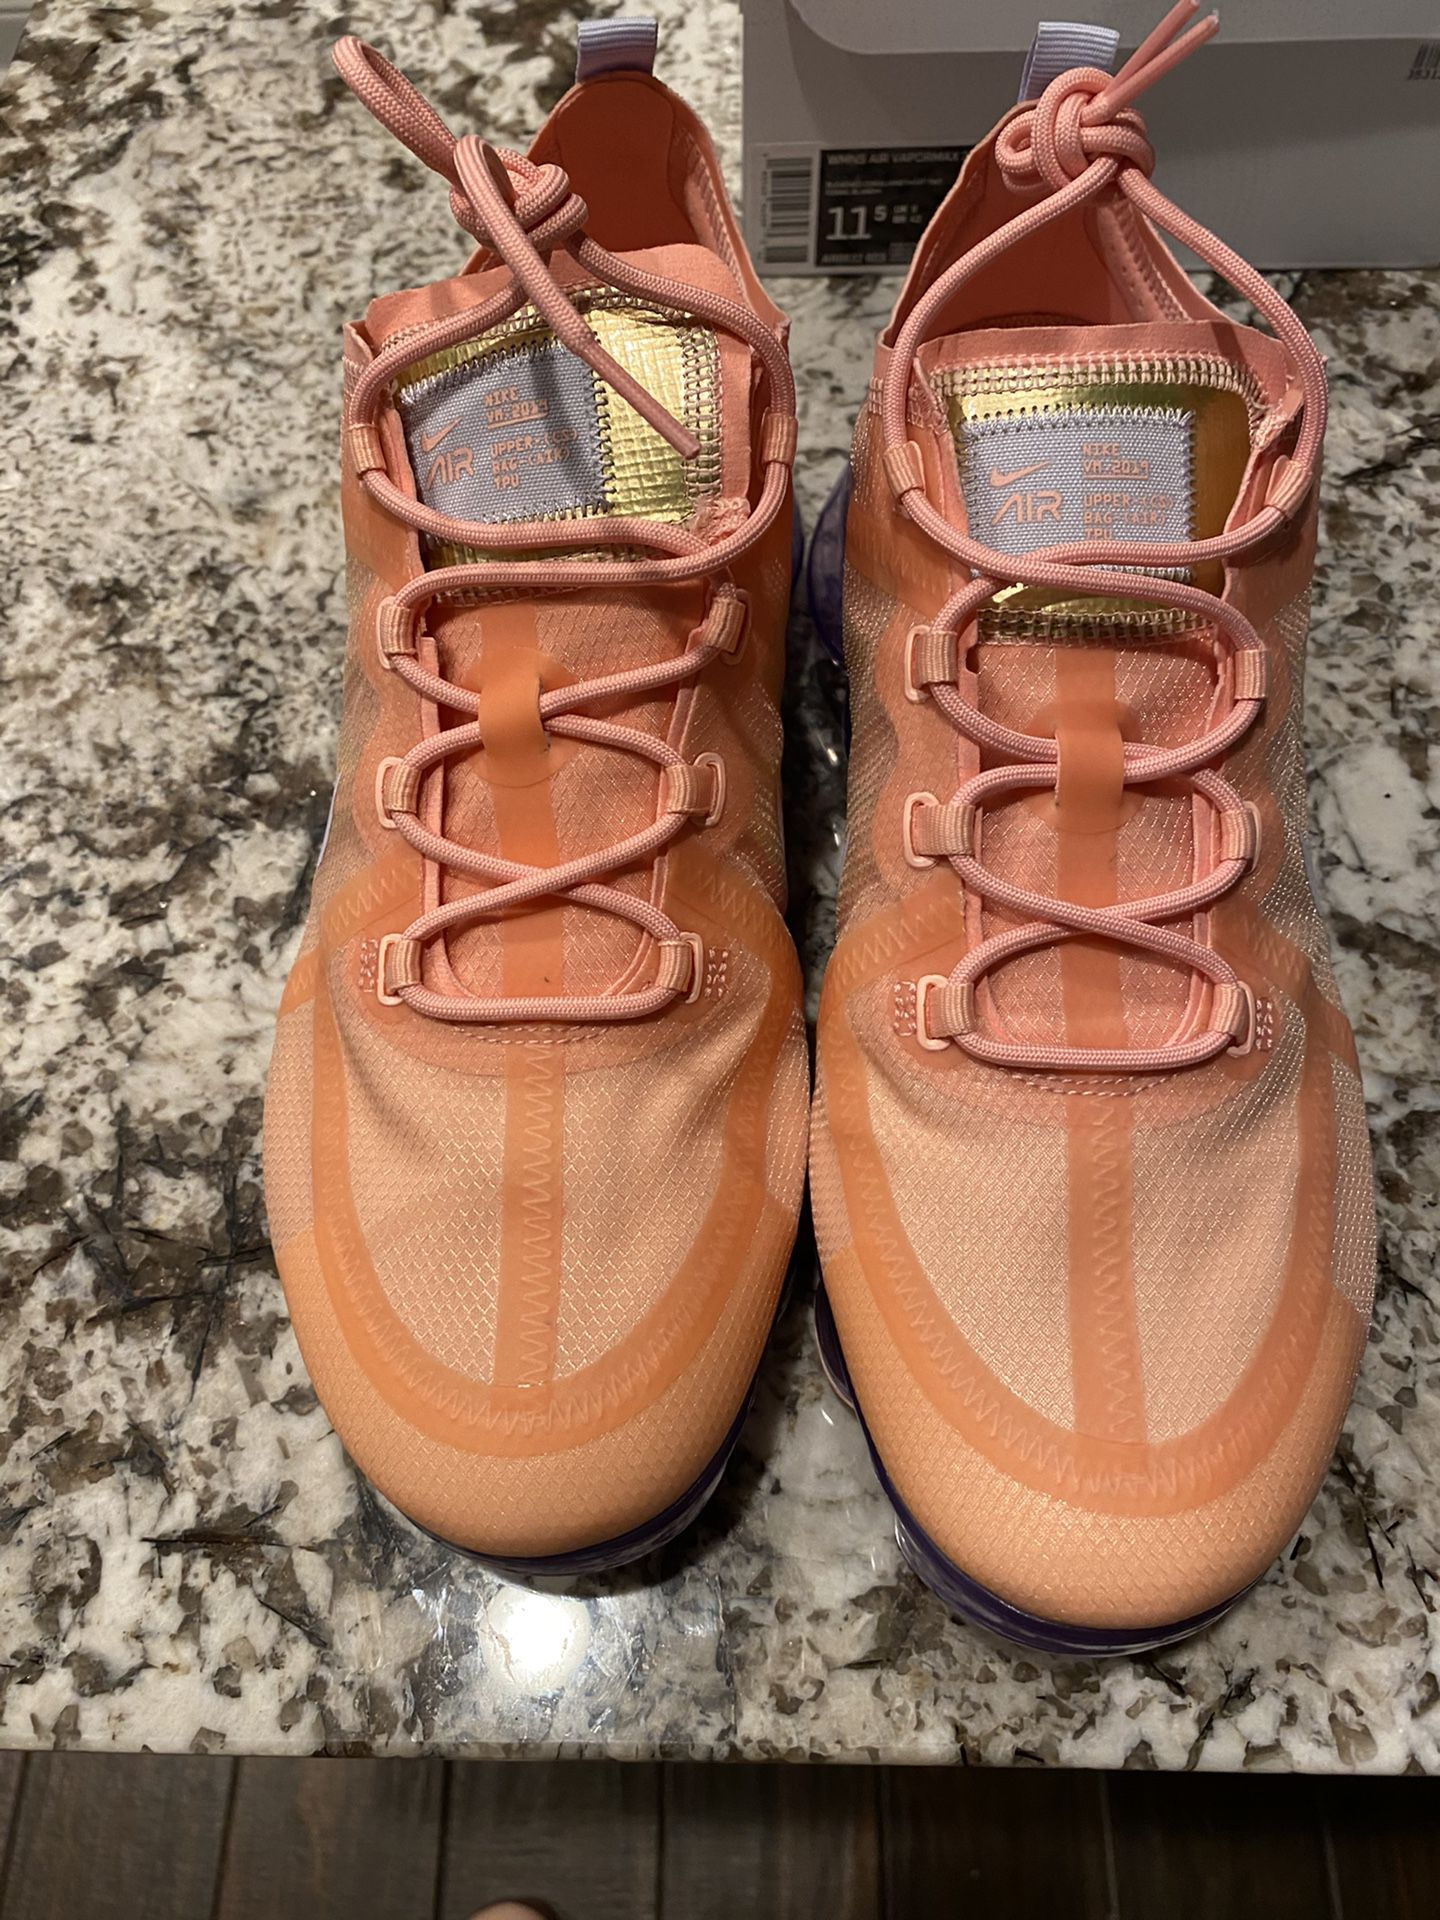 EASTERMAX Vapormax 2019 Bleached Coral/Amethyst Mint/Corail Blanchi